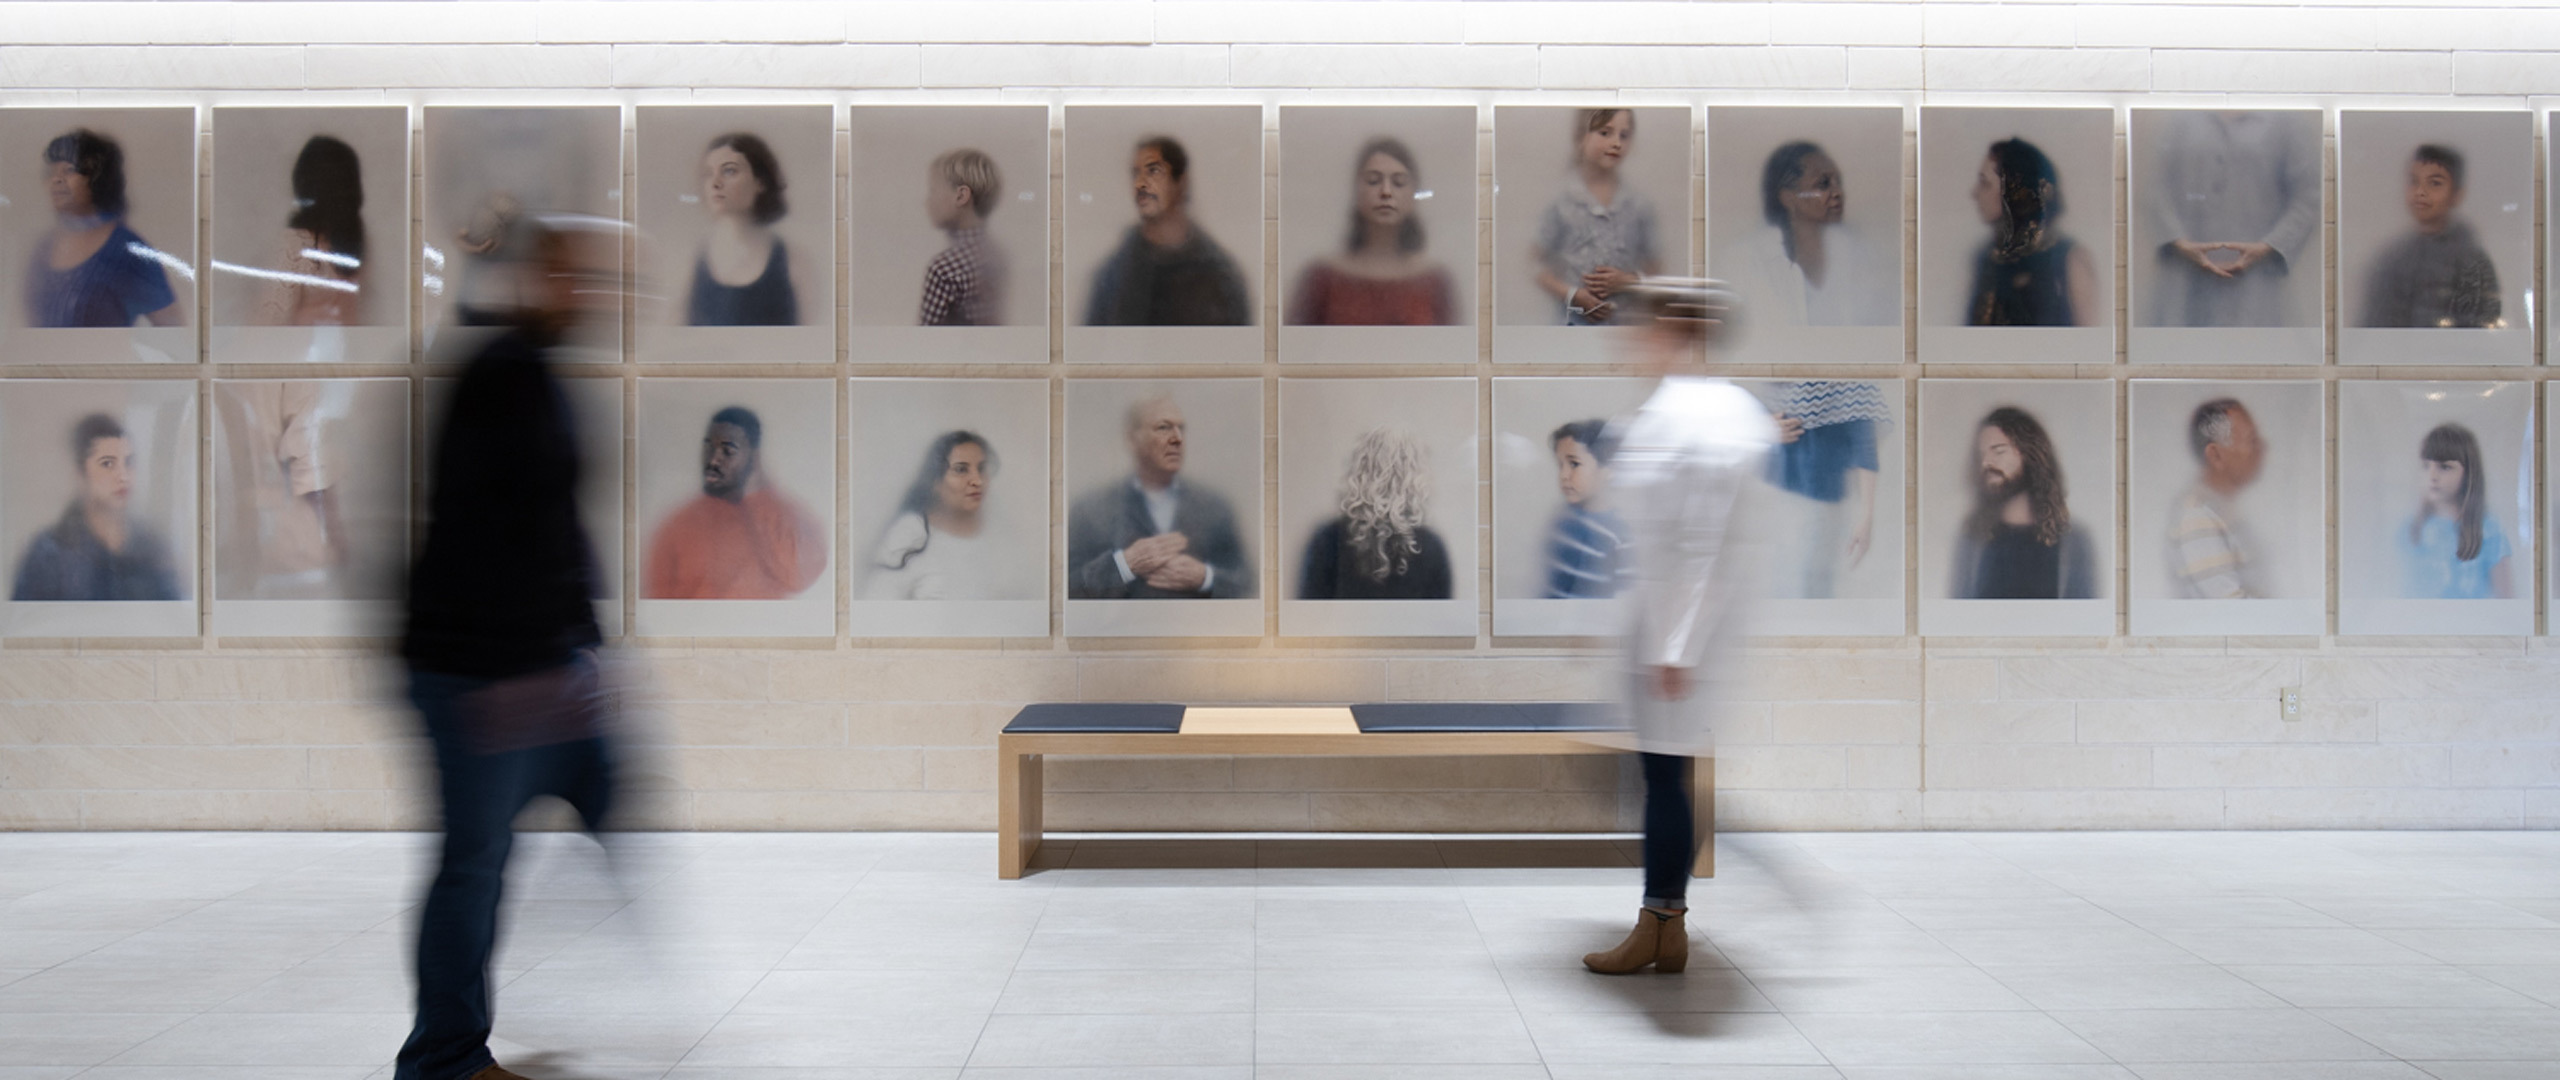 Two people walking in front of an art installation of portraits of faces in a row.